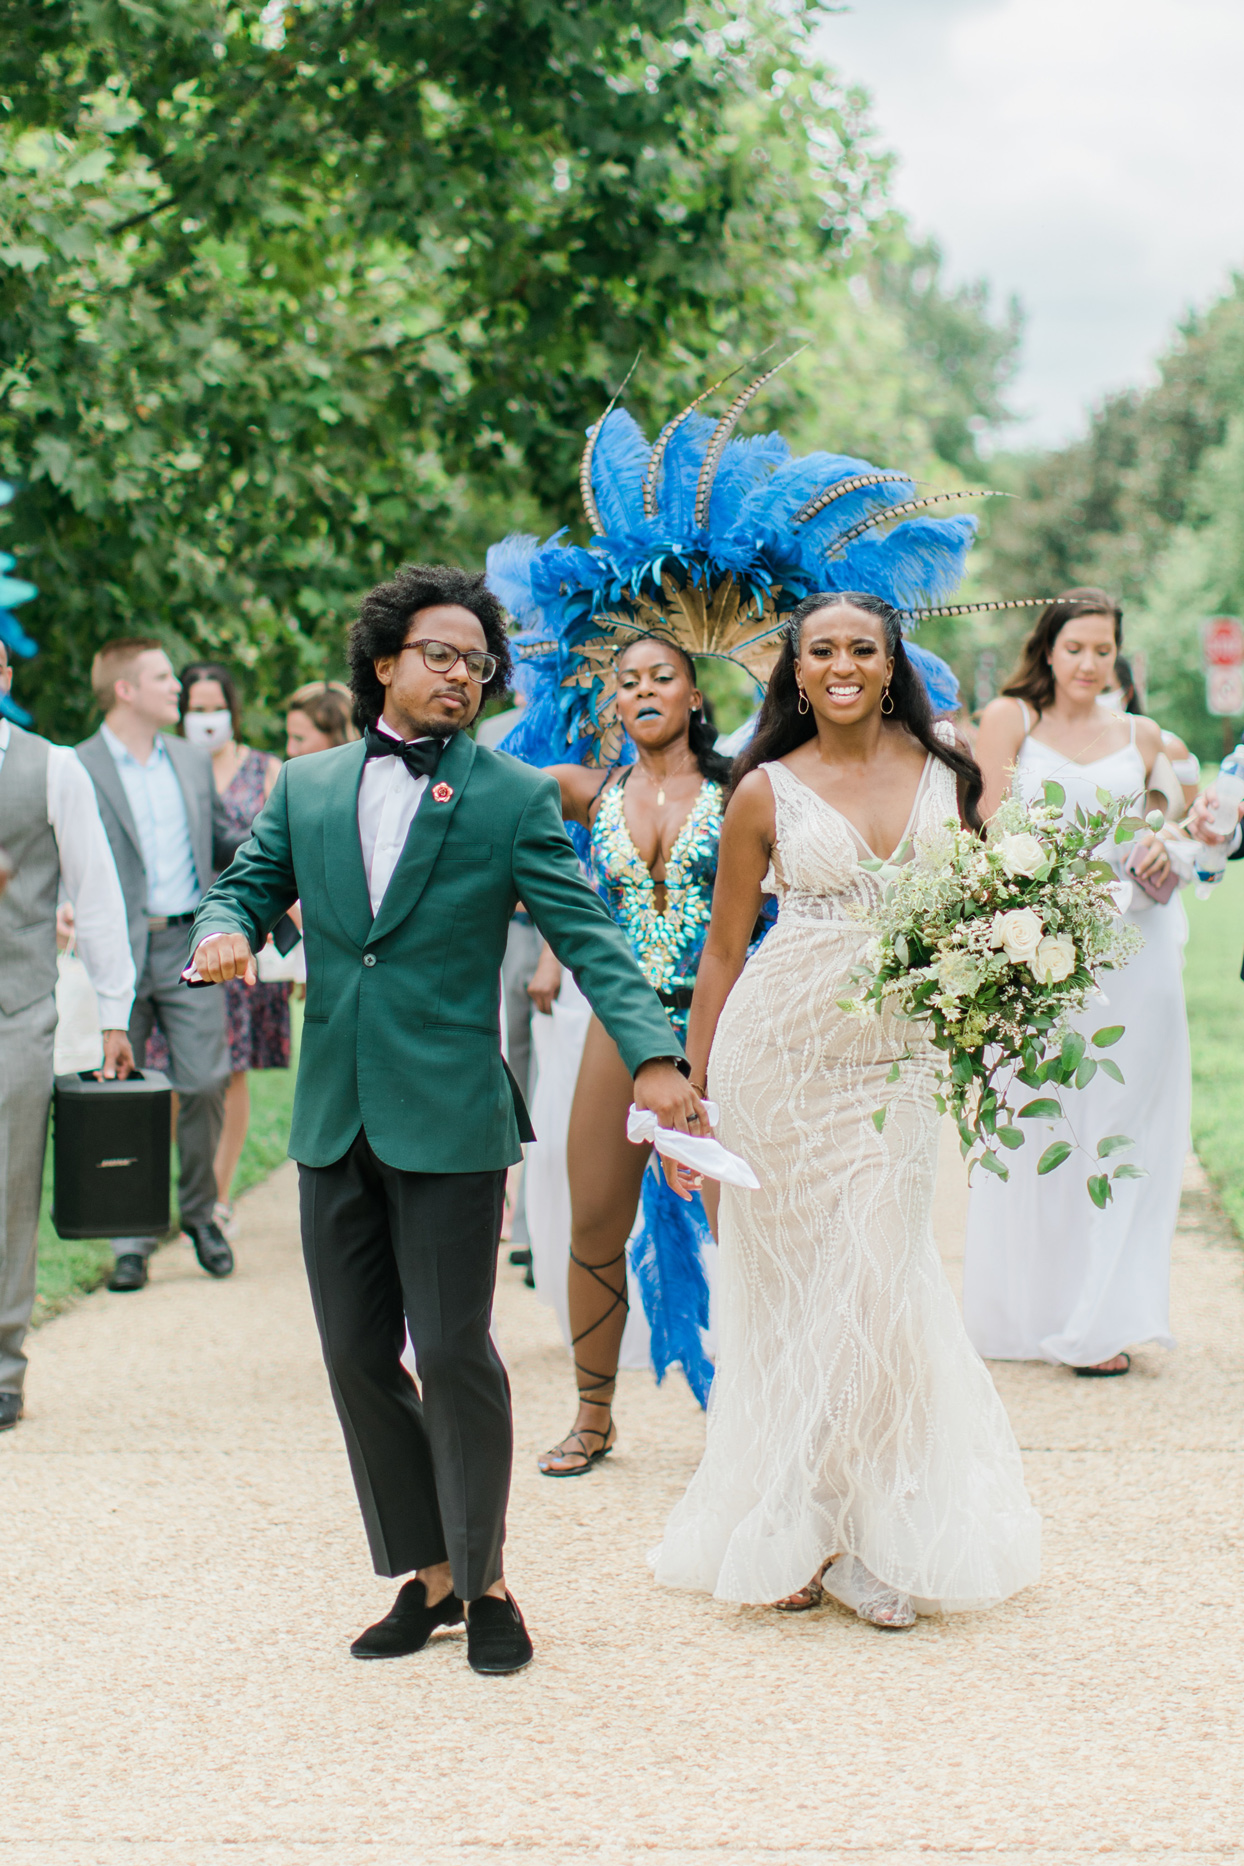 wedding soca parade with blue-feathered dancers